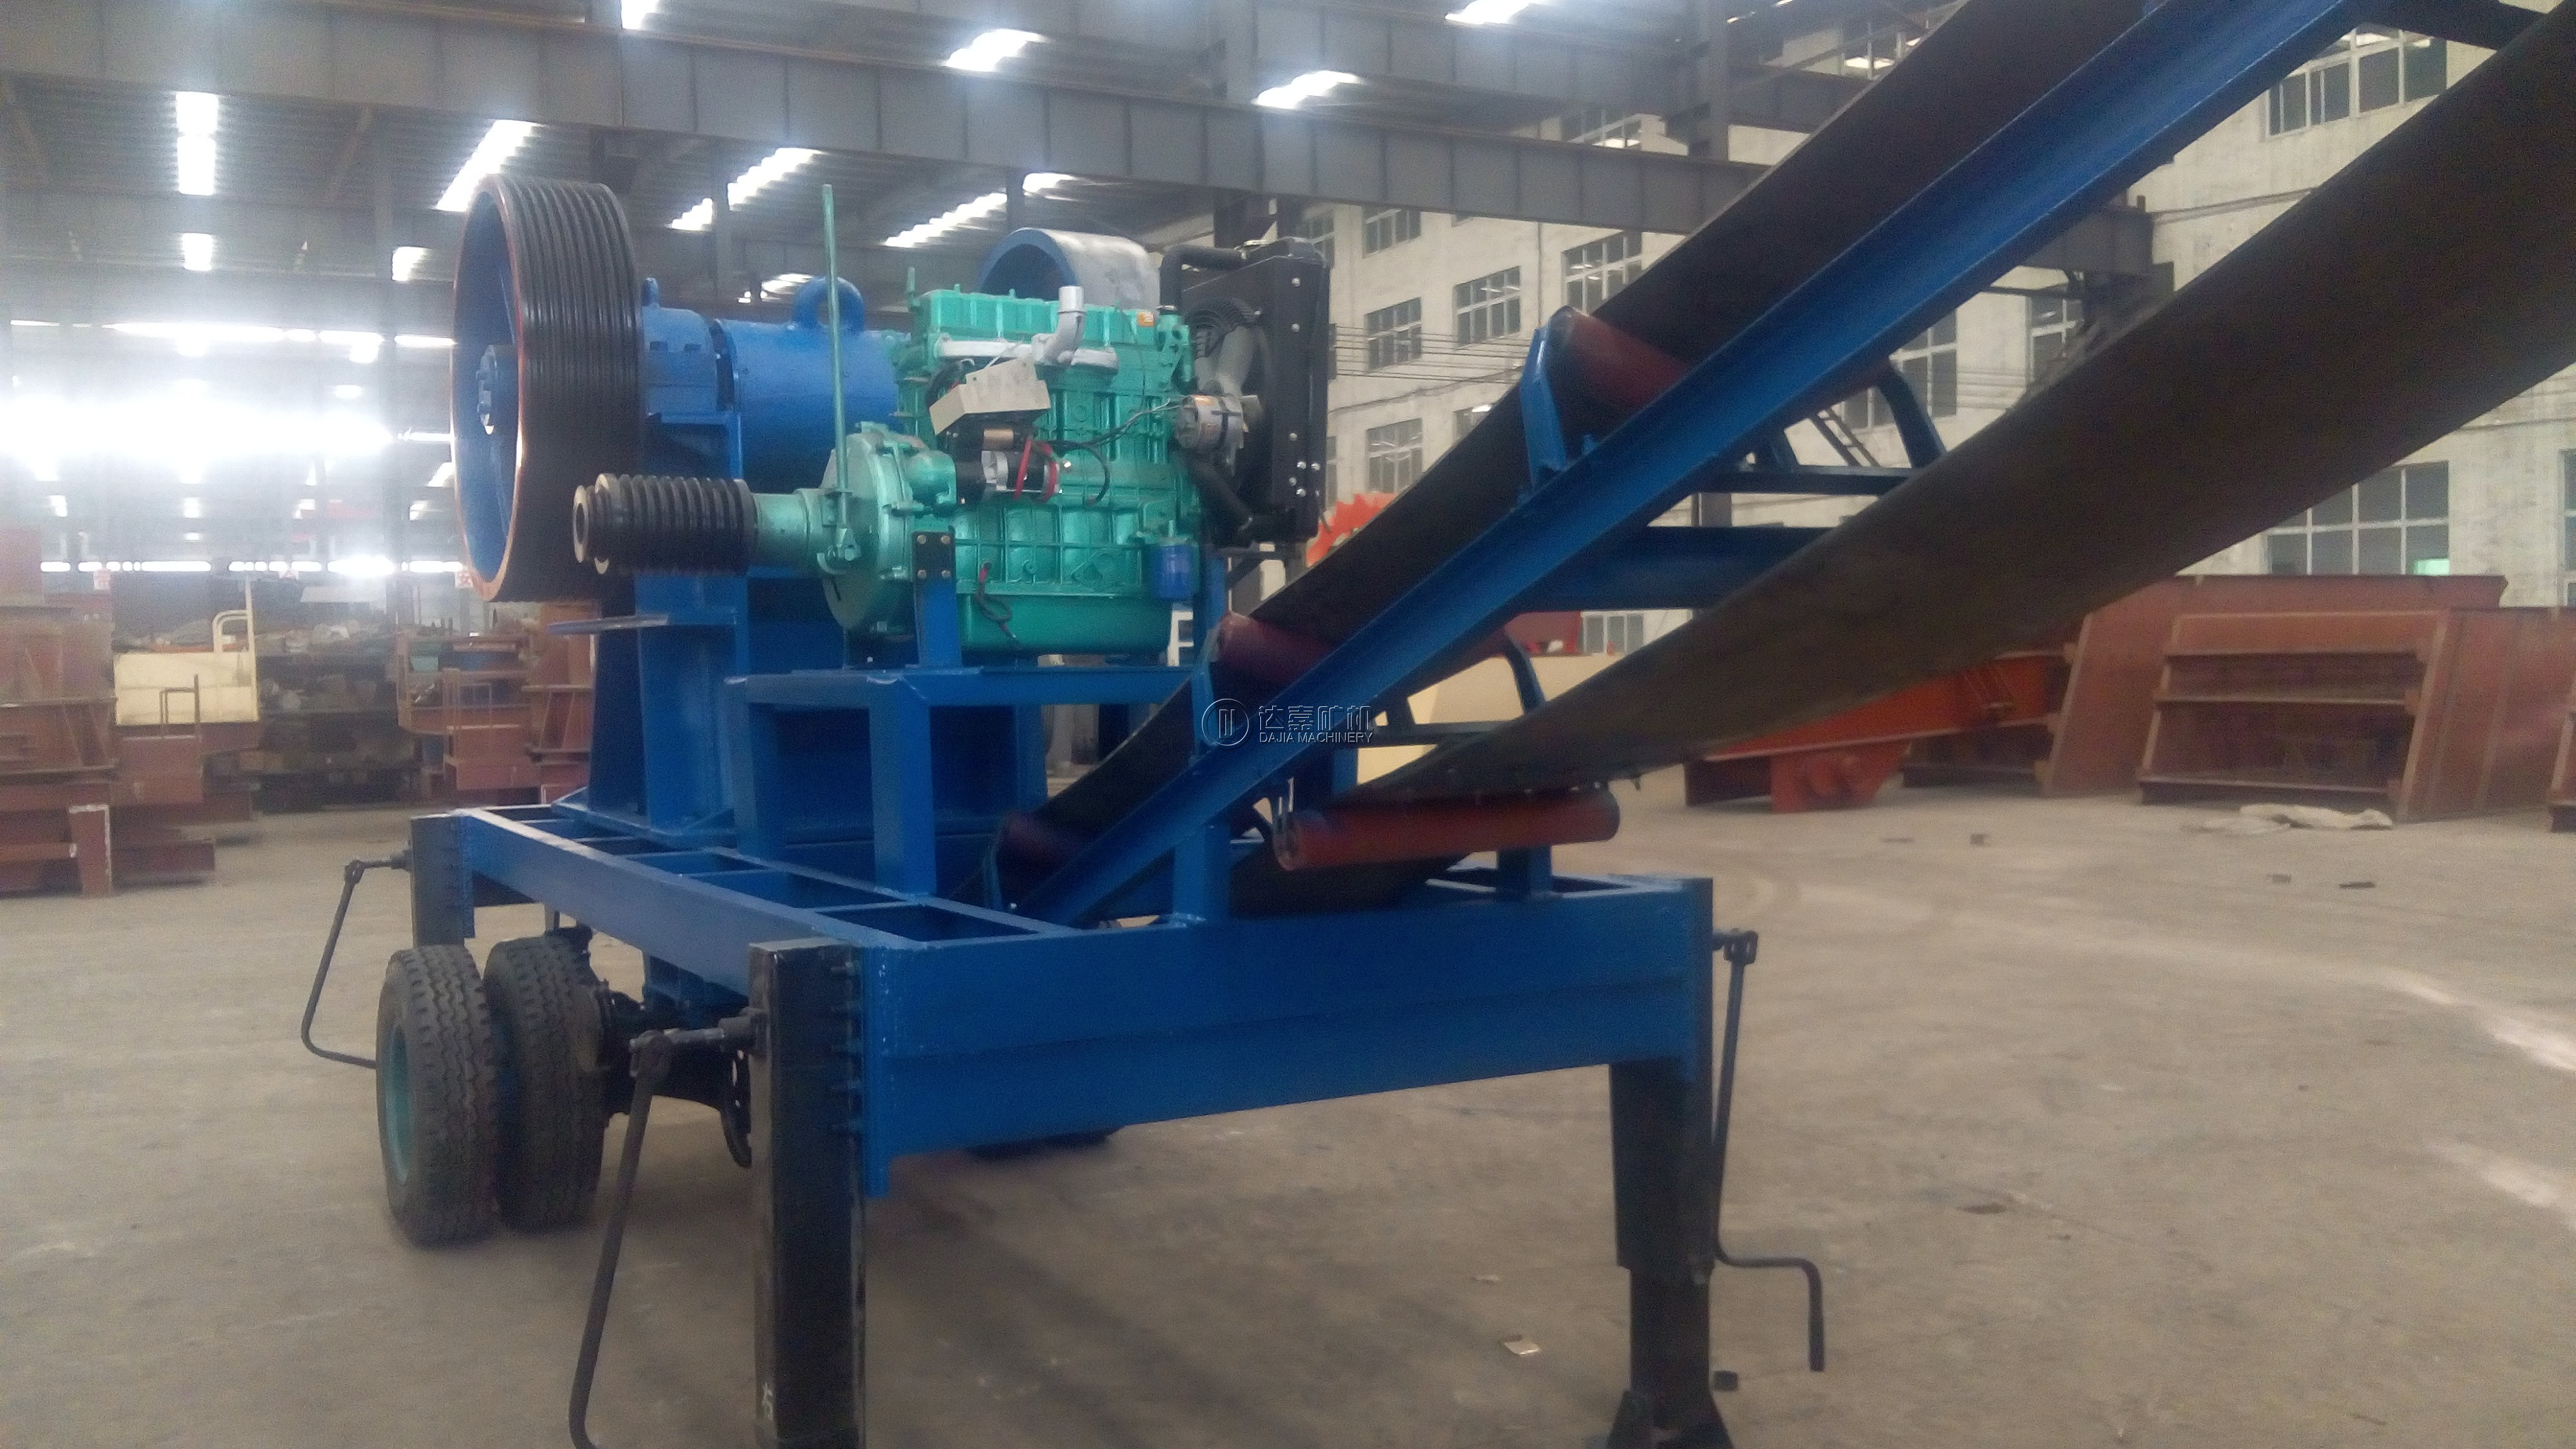 Diesel Mobile Jaw Crusher